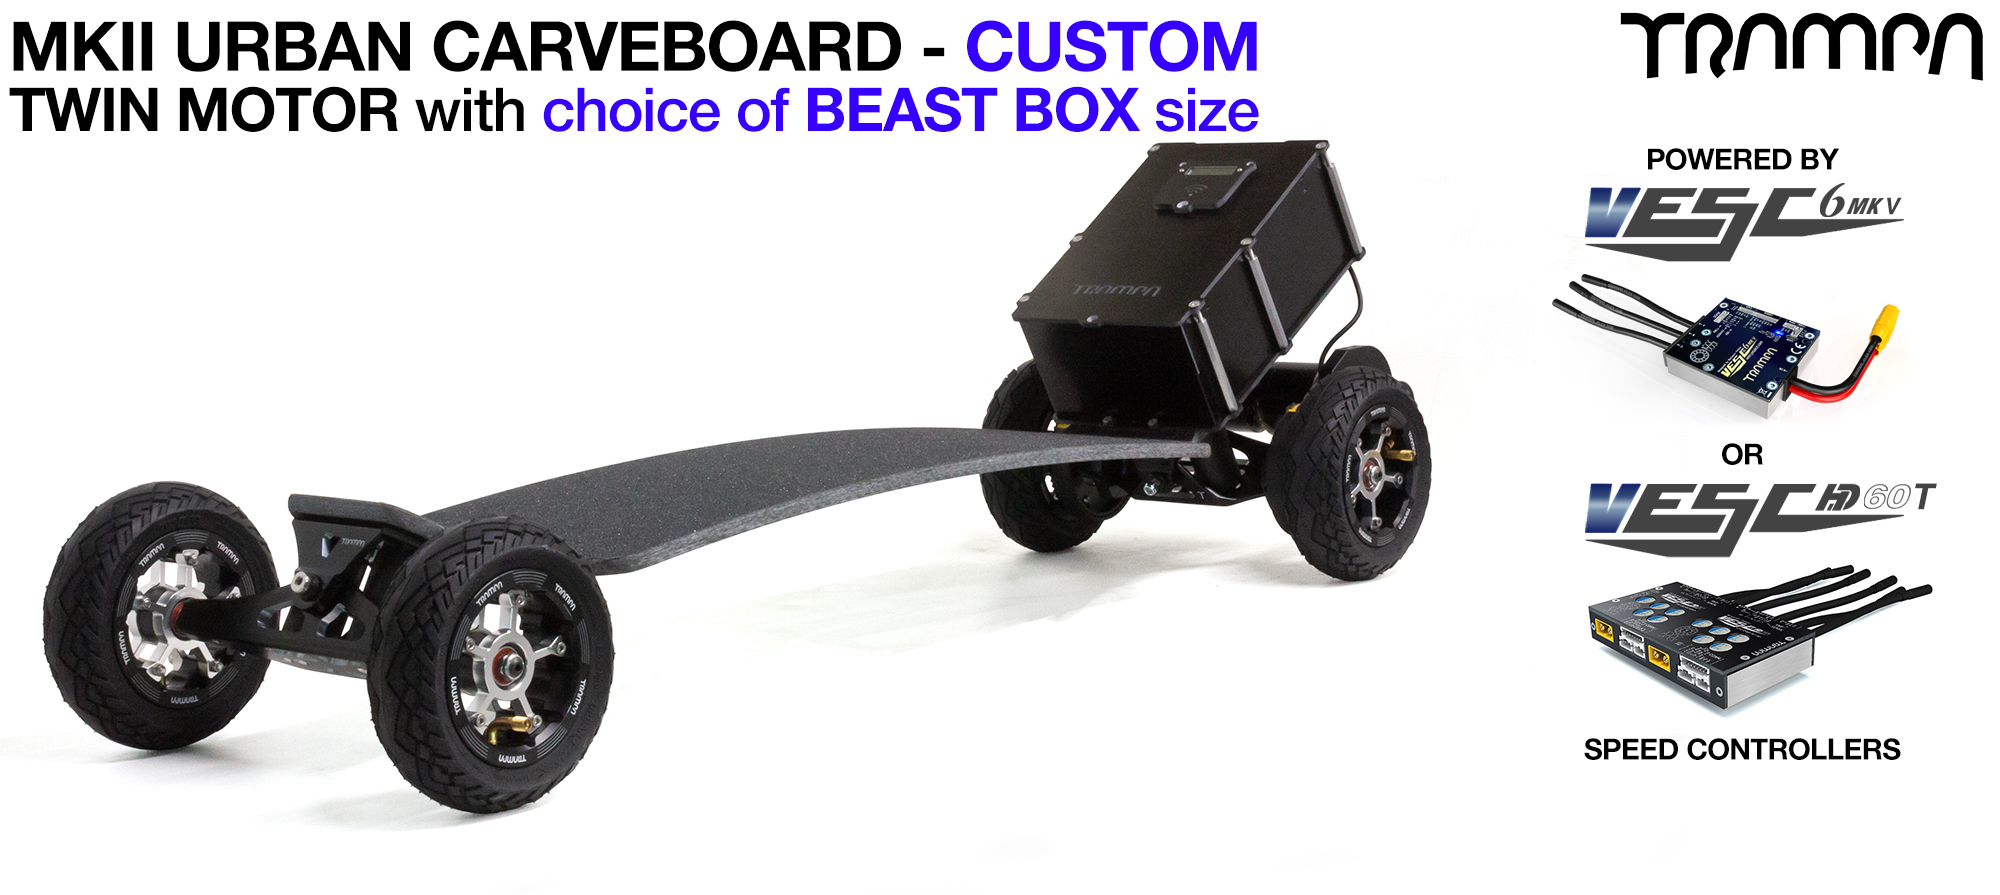 MkII TWIN Motor TRAMPA Electric URBAN Carveboard with 16A BEAST Box, VESC MKIII & OFF-SET MEGASTAR Wheels as standard